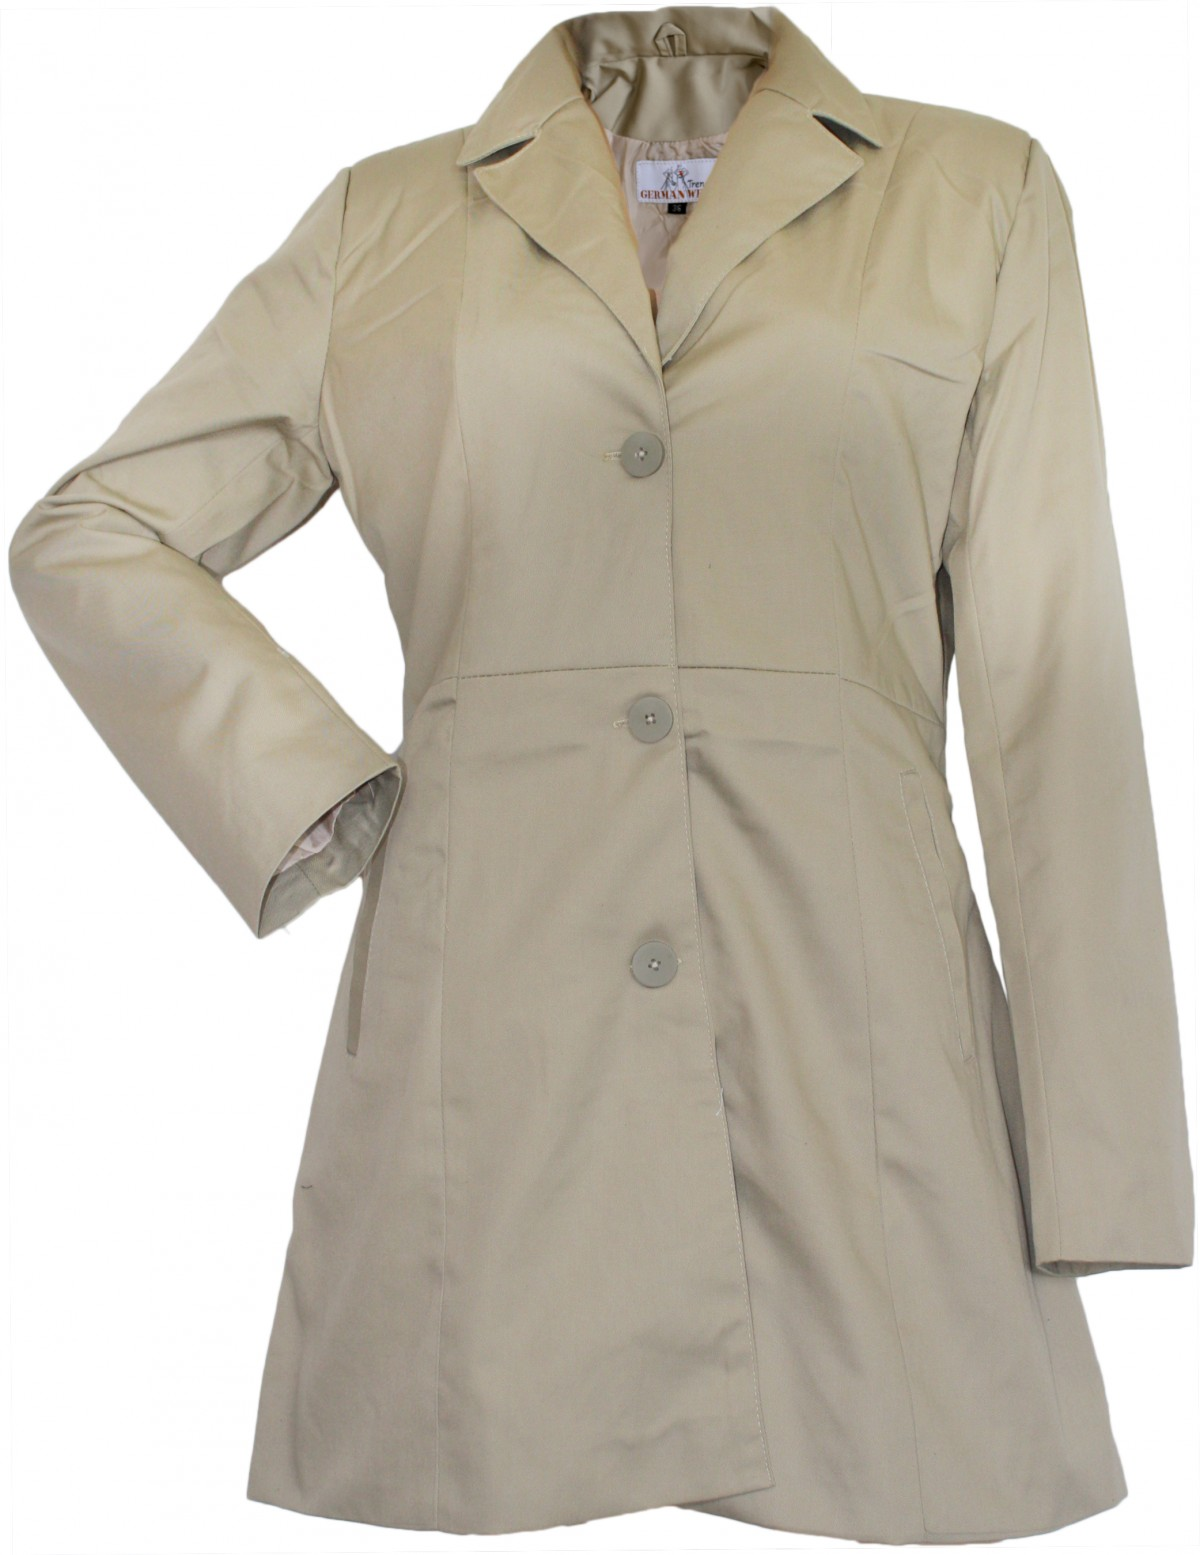 Find Beige raincoats & trenchcoats at ShopStyle. Shop the latest collection of Beige raincoats & trenchcoats from the most popular stores - all in one.